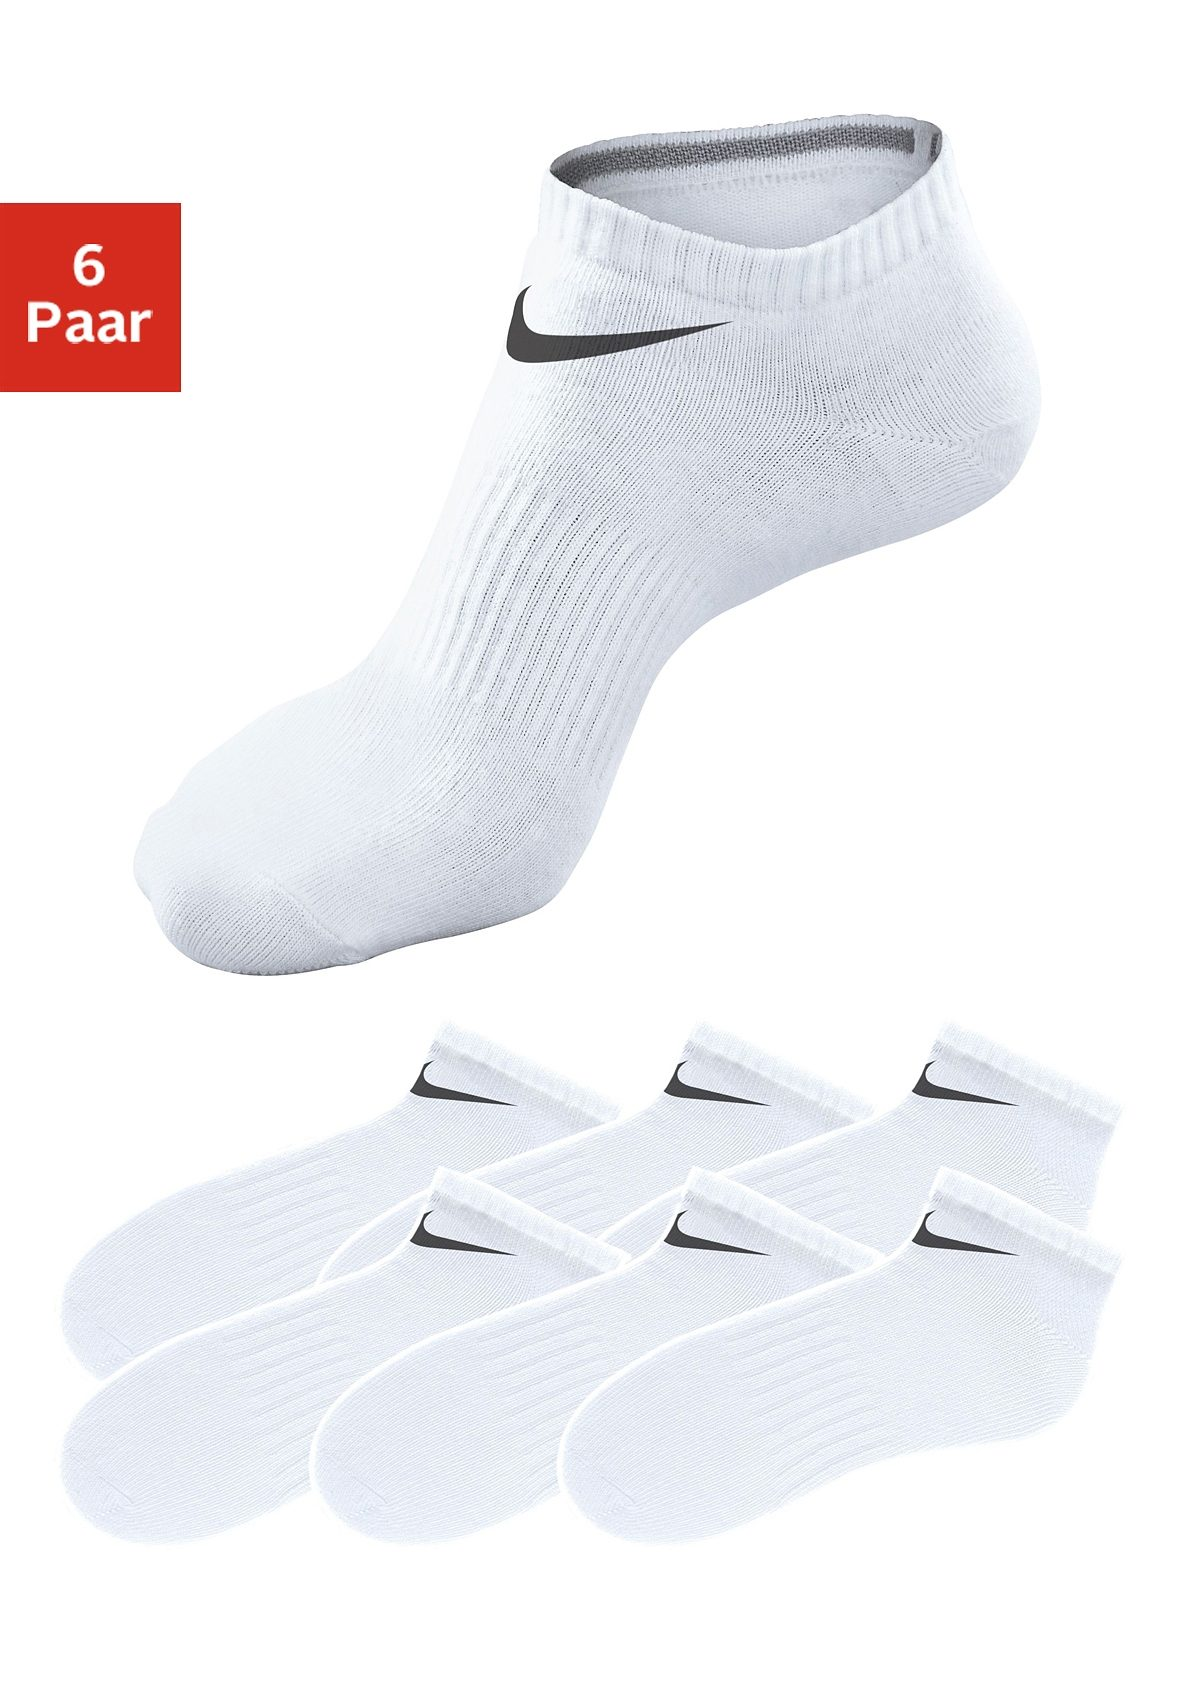 Nike Sneakersocken (6 Paar)